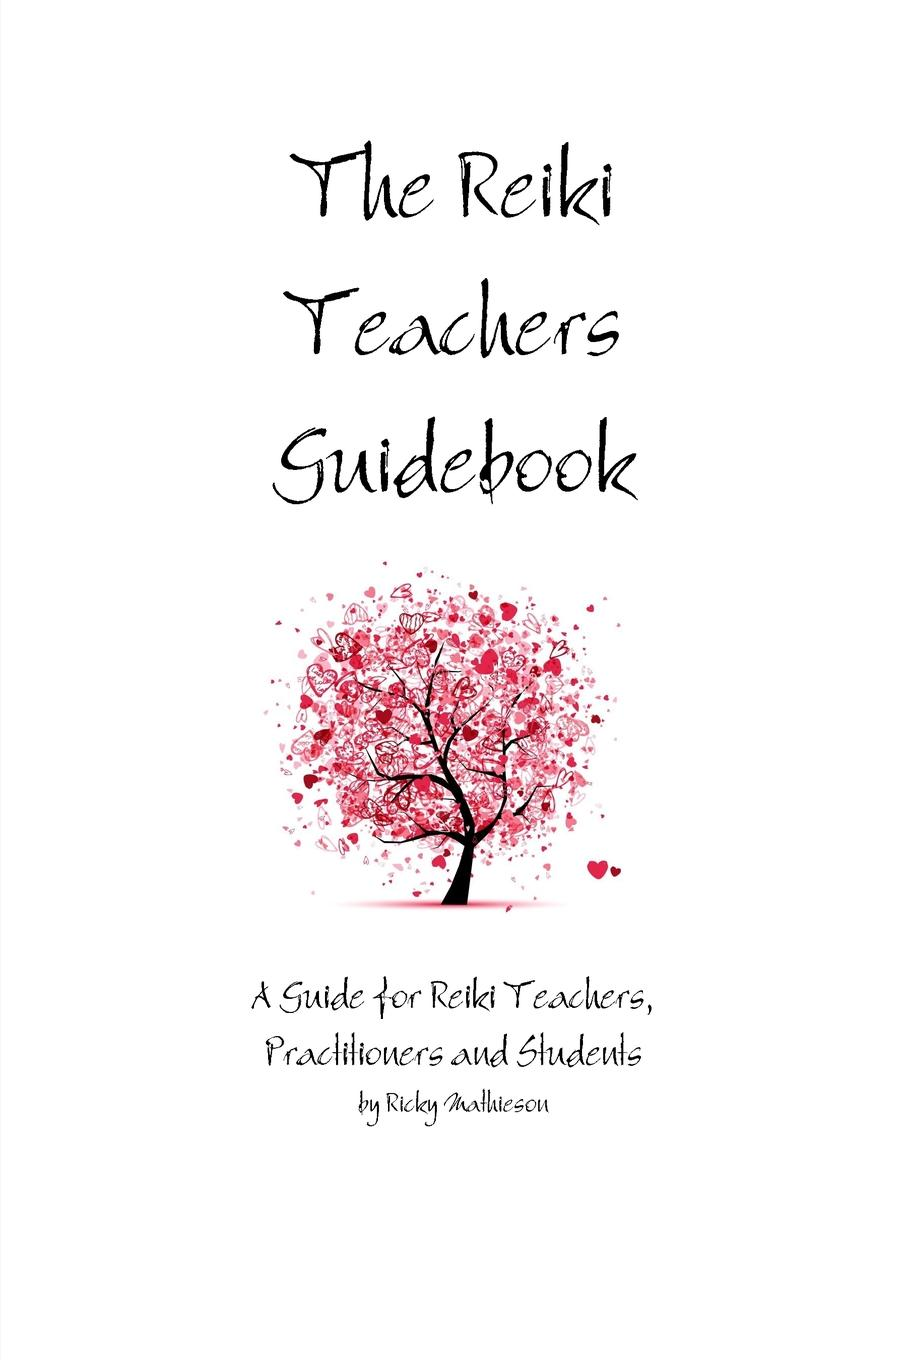 Ricky Mathieson The Reiki Teachers Guidebook. A Guide for Reiki Teachers, Practitioners and Students